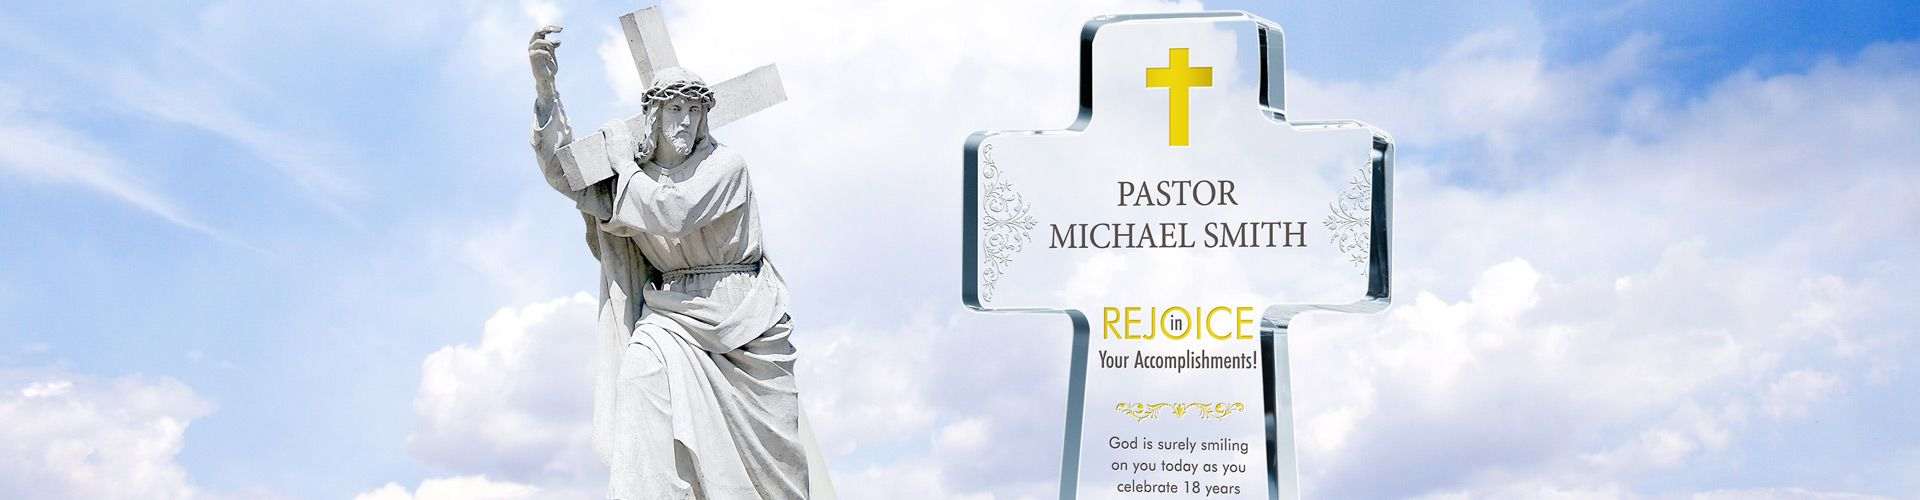 Personalized Pastor Gifts and Religious Plaques - Banner 1